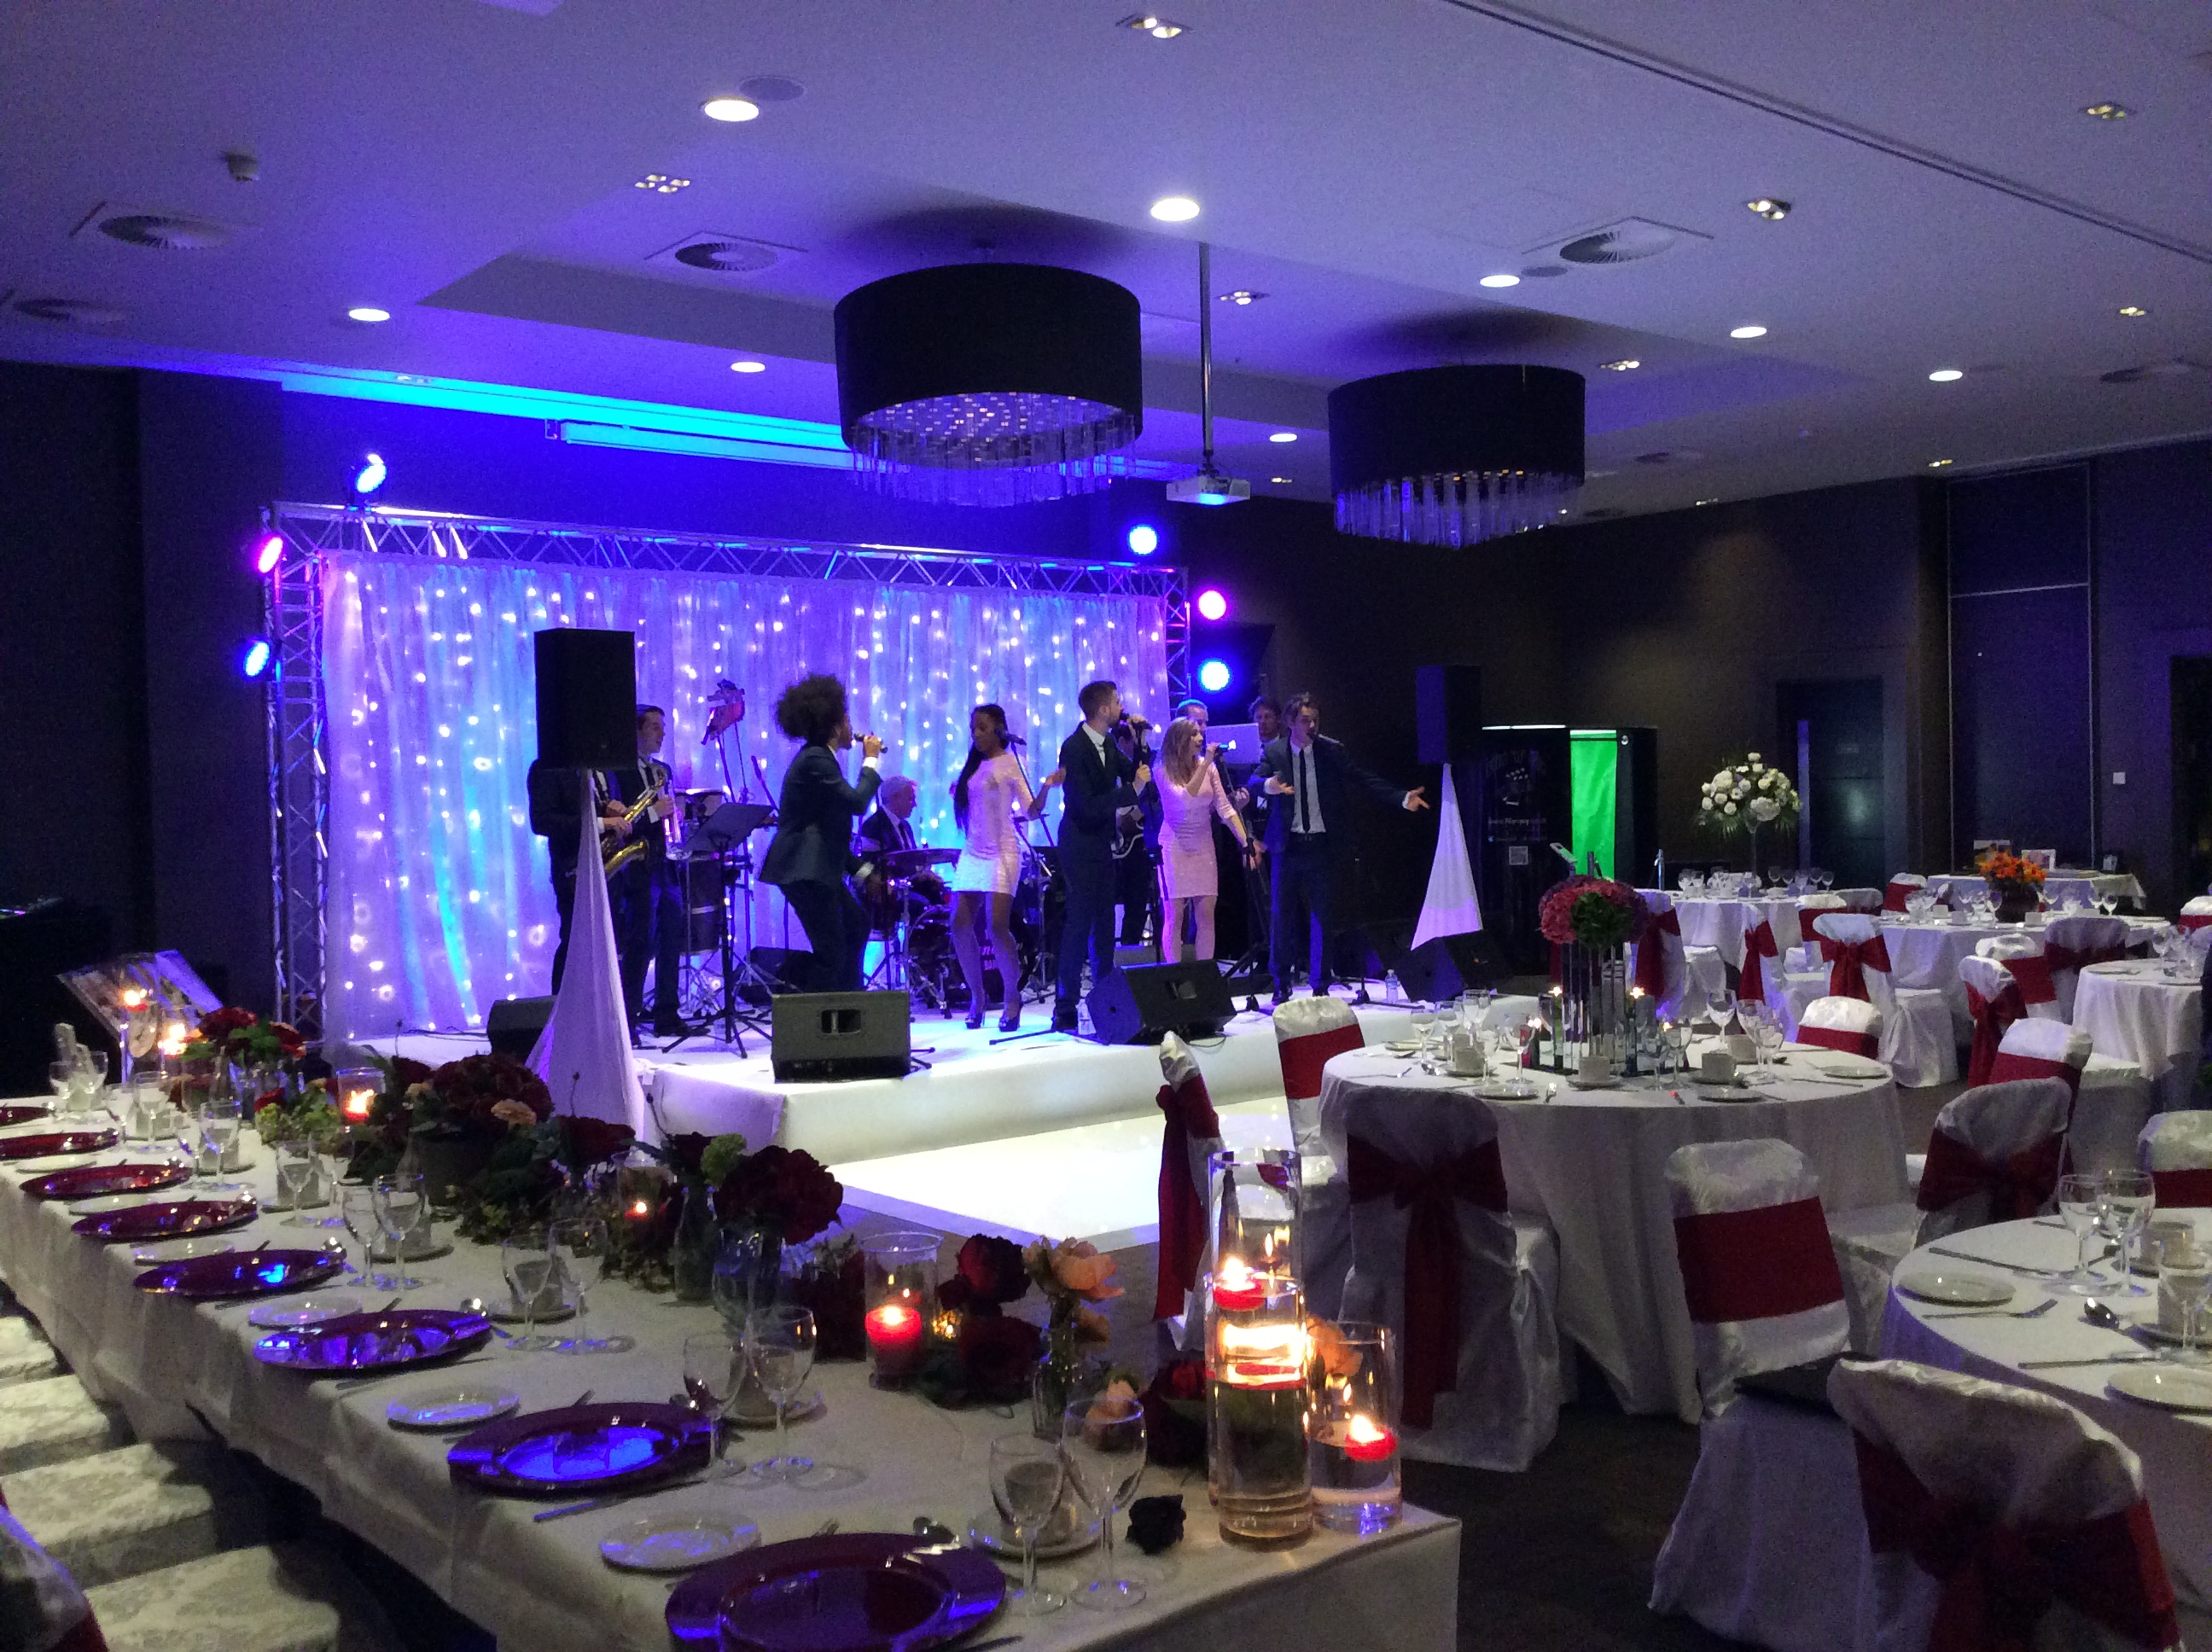 Wedding Ceremony Village Hotel London Watford Photo Gallery Banquet